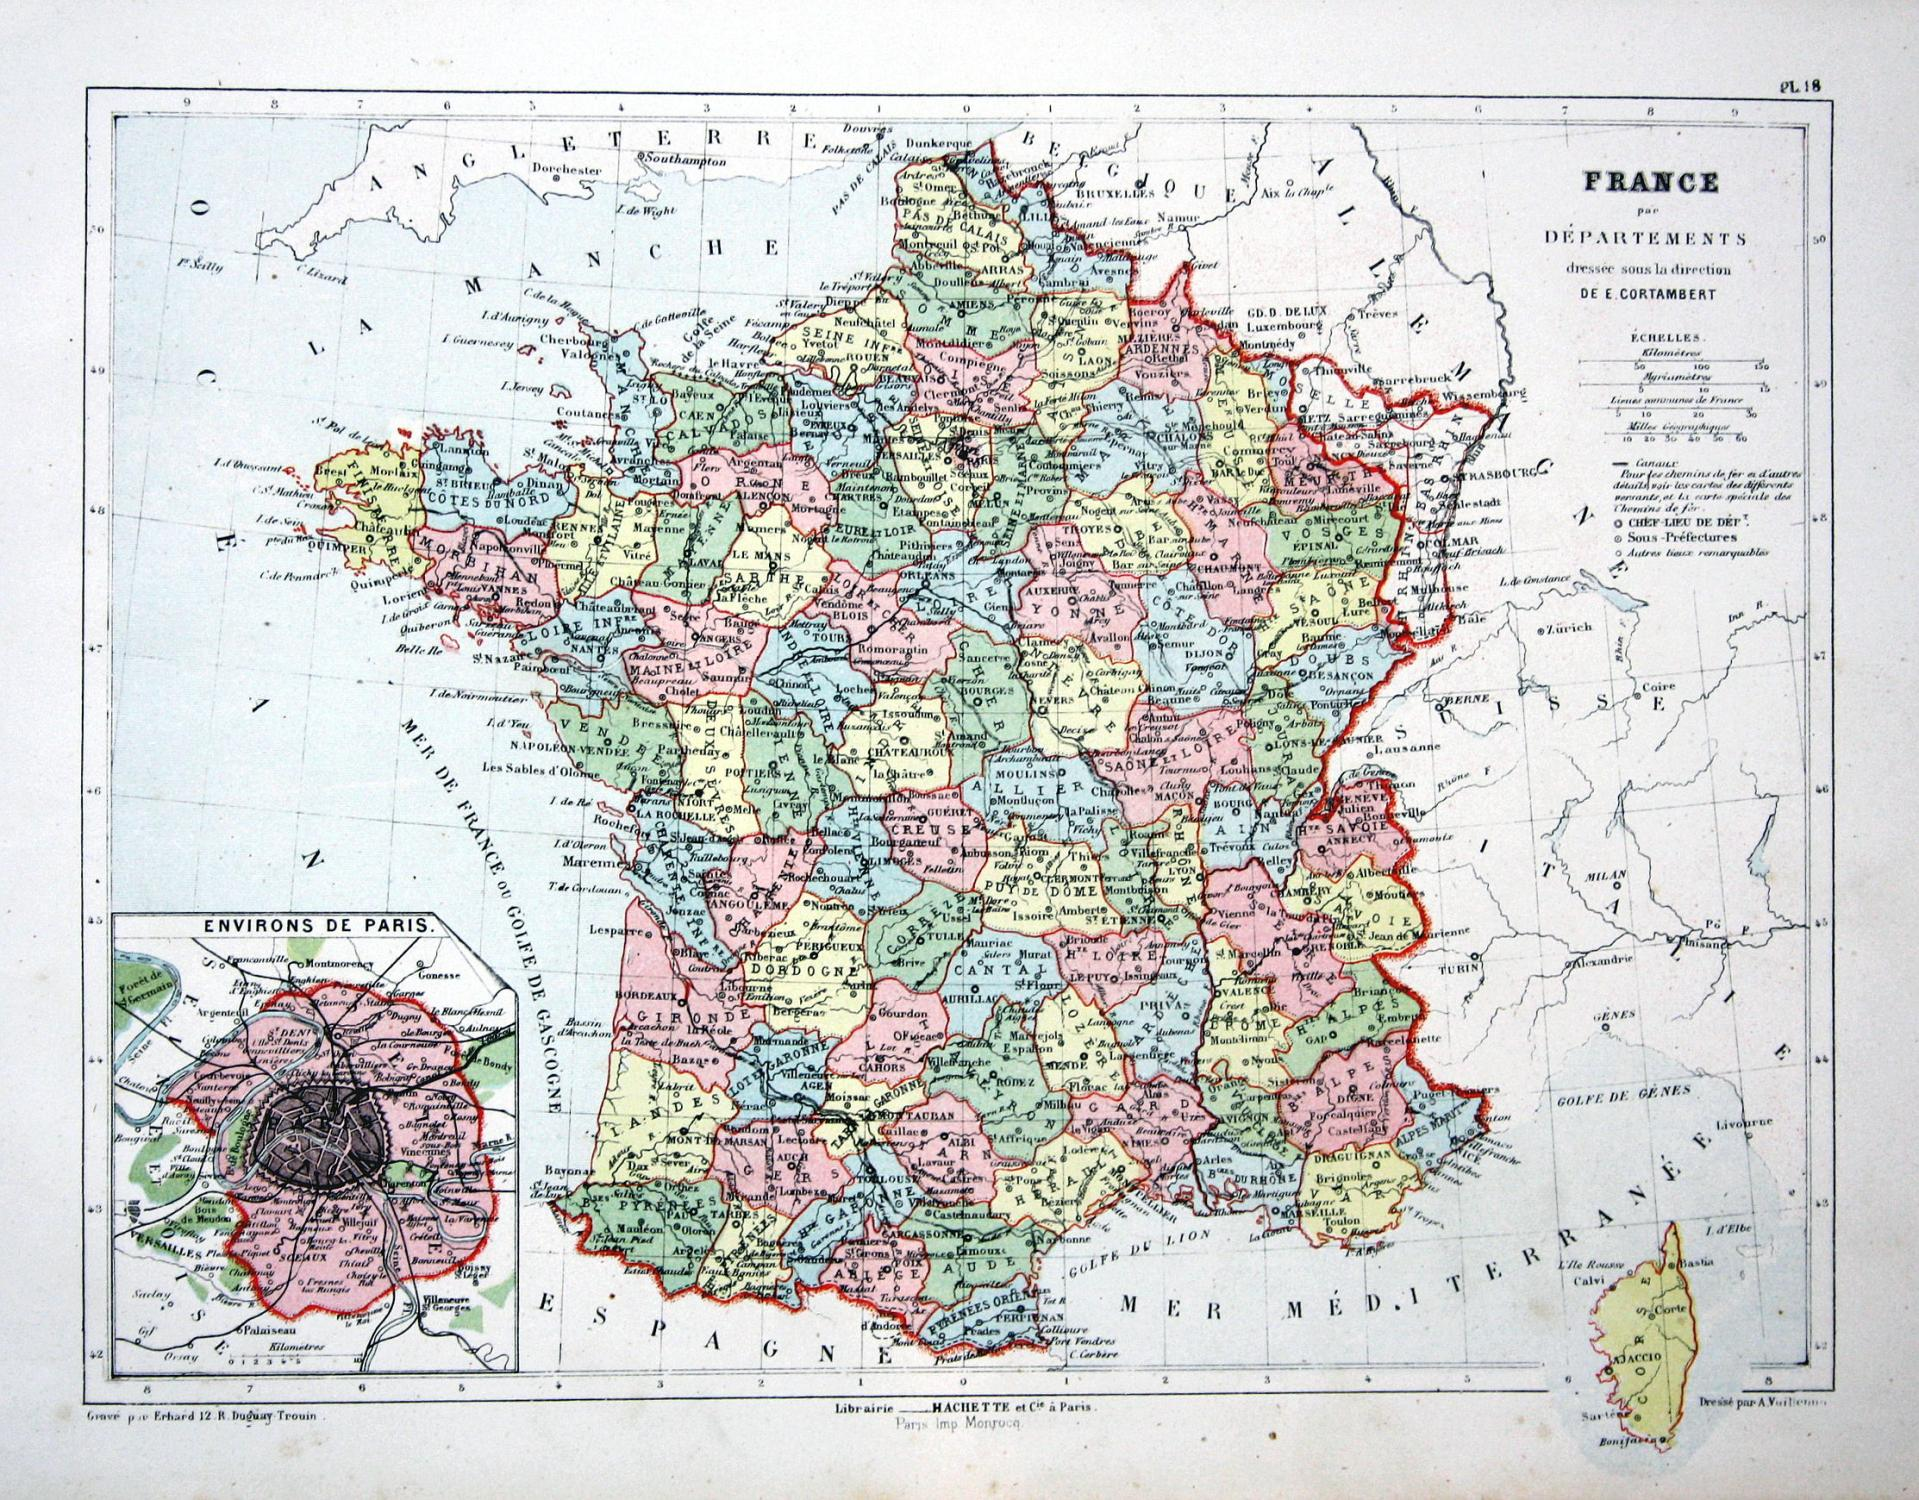 France Par Departements Paris France Frankreich Weltkarte Karte